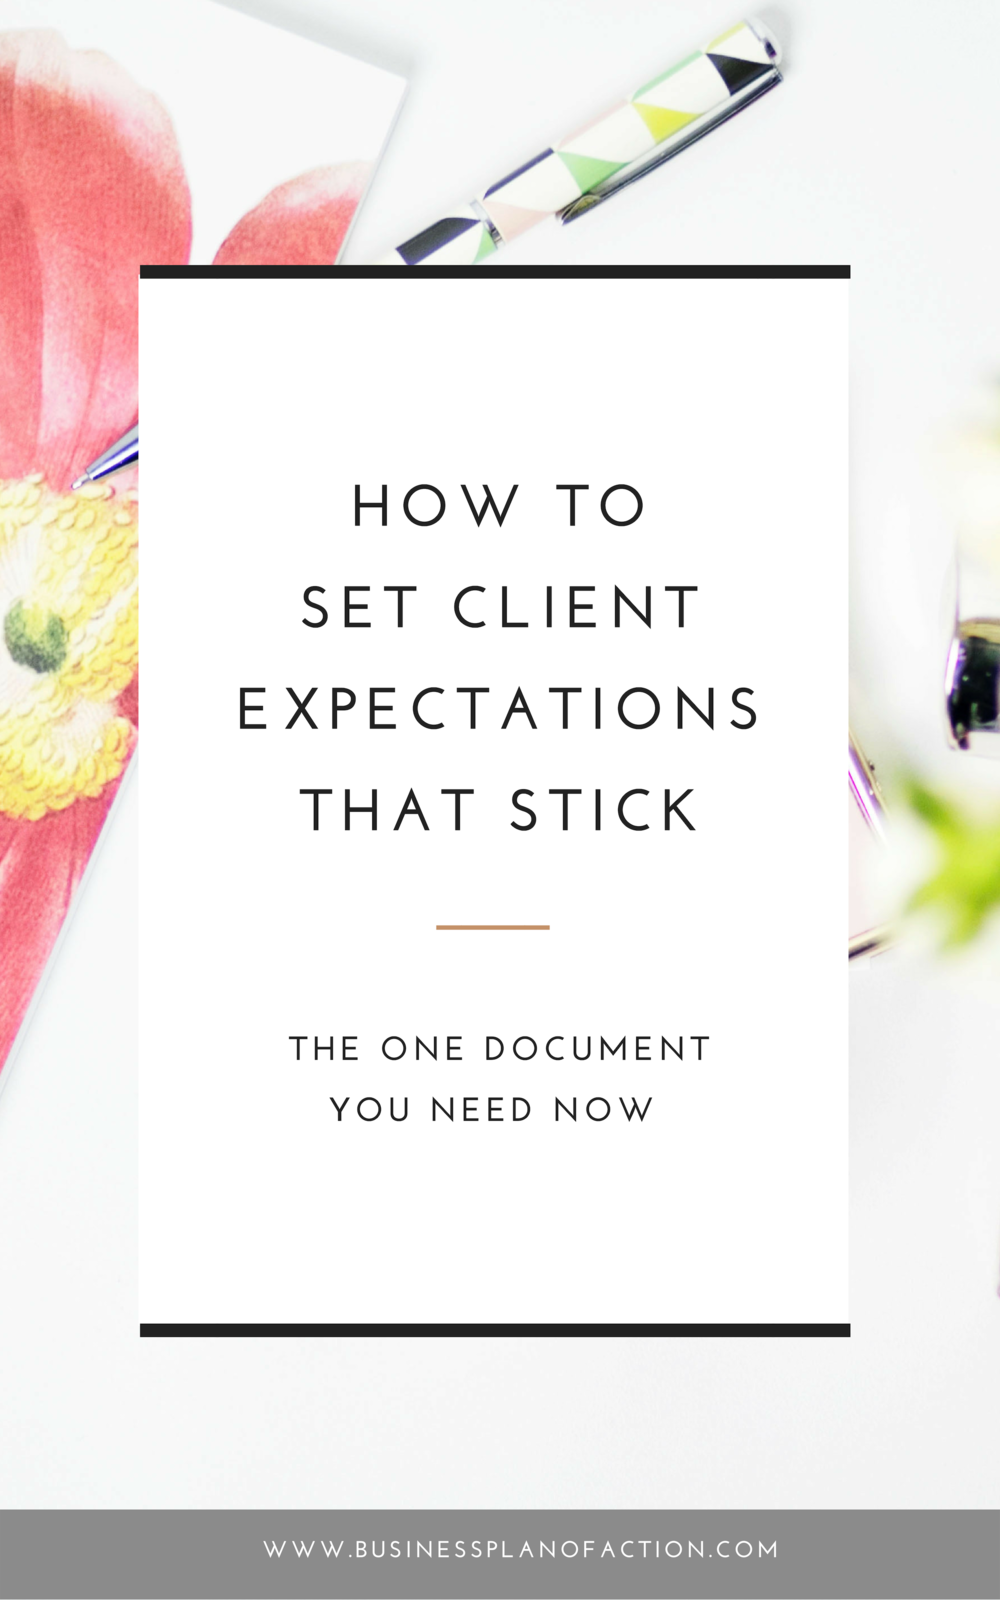 When you're working 1:1 with clients, you need to set client expectations that are clear and that stick. Here, five big topics to focus on.